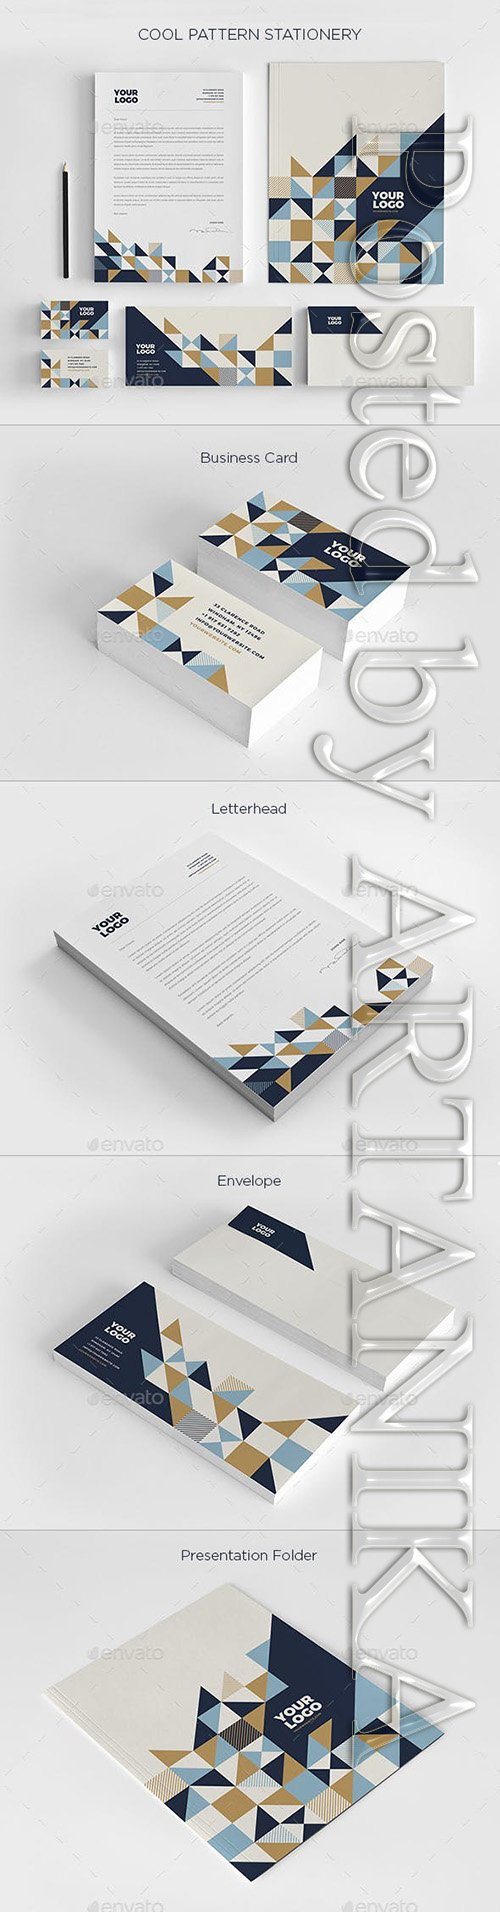 Graphicriver Cool Pattern Stationery 19204080